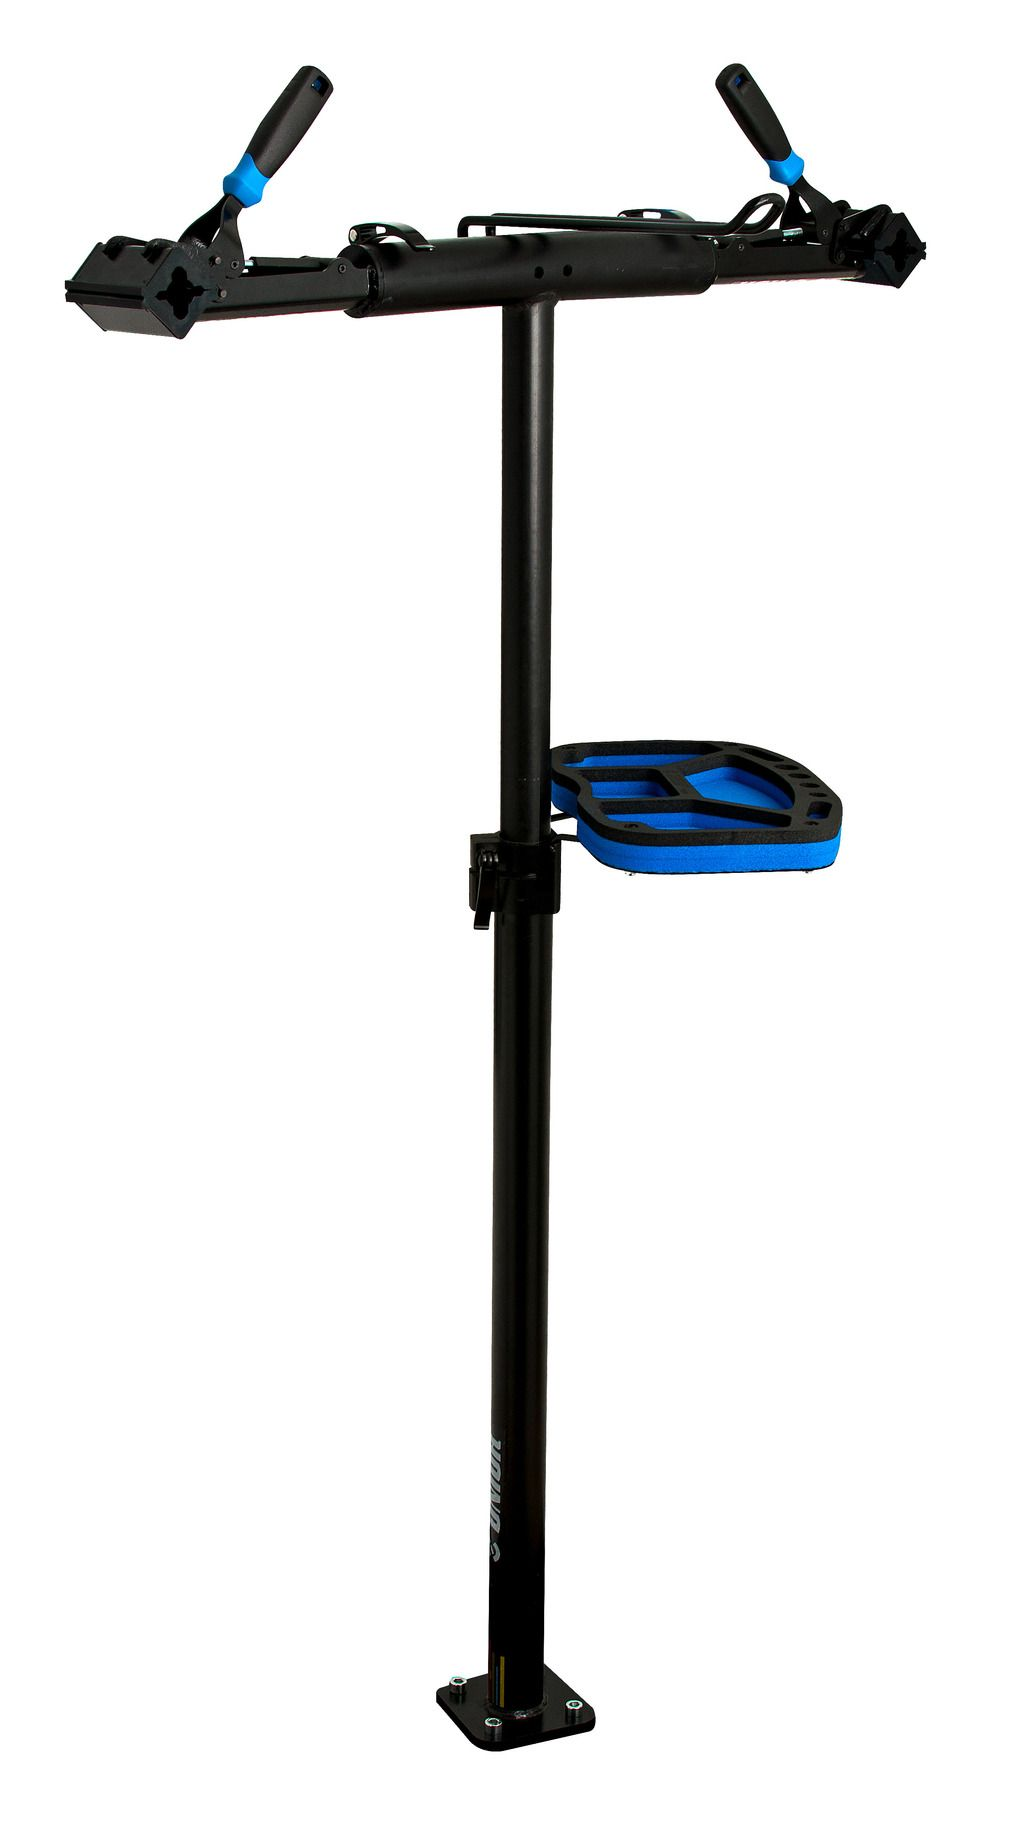 Unior Pro Repair Stand With Double Clamp Without Plate 1693cs2 | Arbejdsstande og måtter